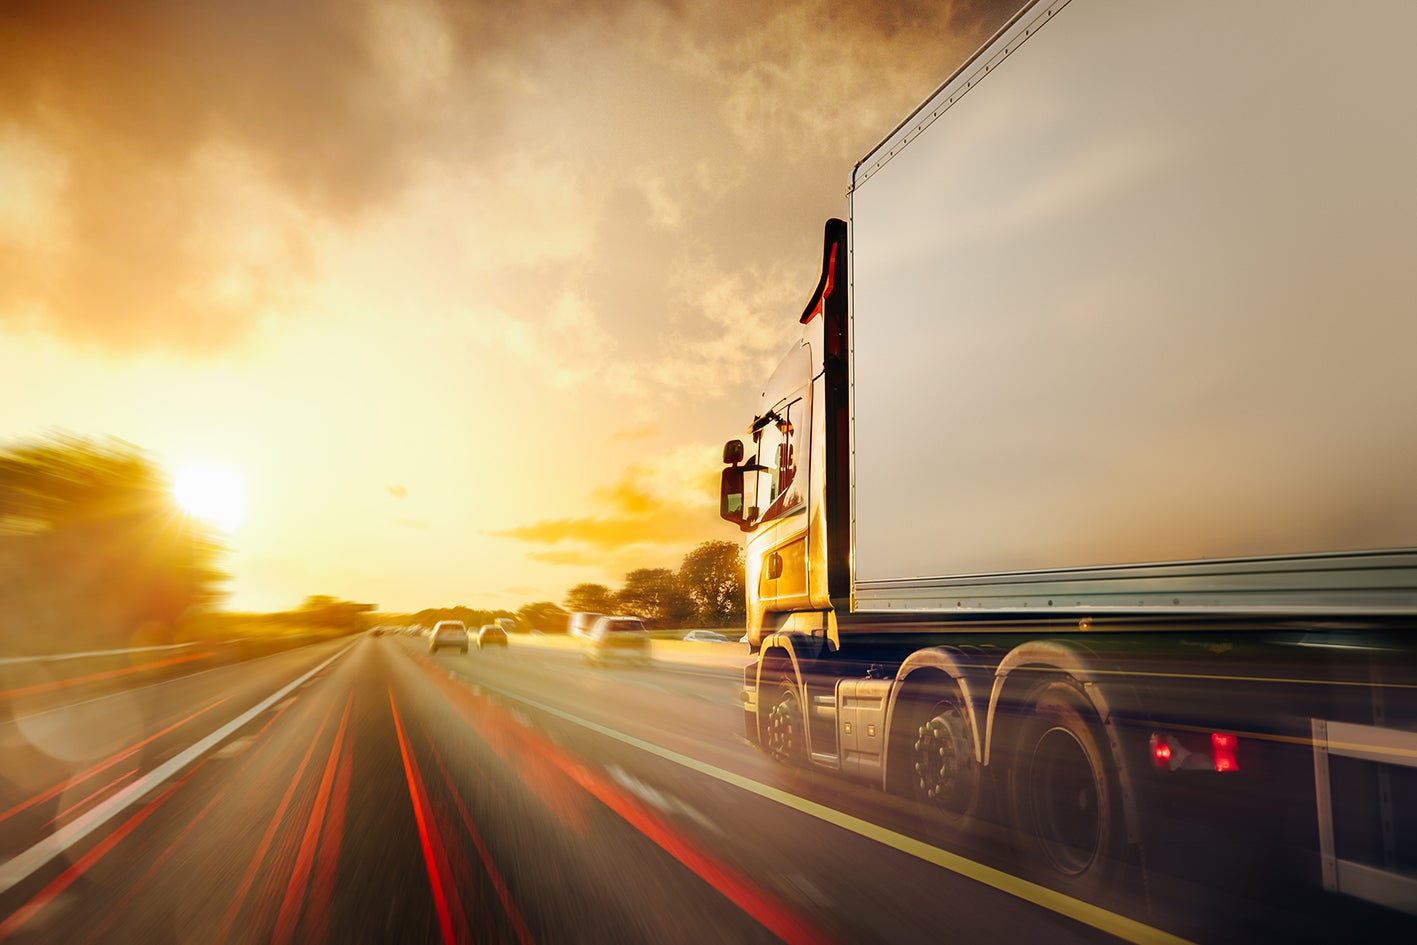 Our-solution-to-the-HGV-crisis